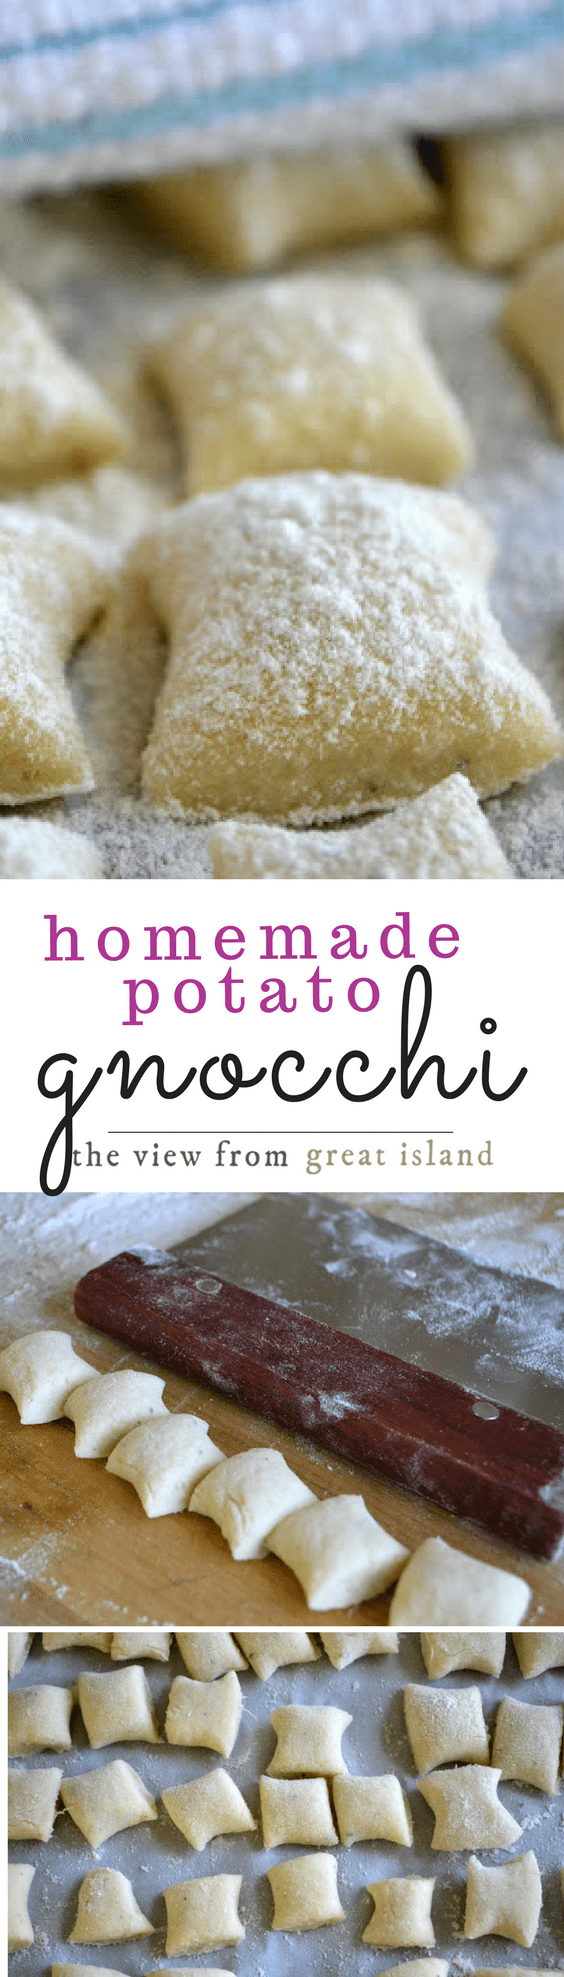 Homemade Gnocchi ~ this light pasta dumpling recipe is made with fluffy baked potato in the dough and is the only homemade pasta I've found that is actually easy to make! | Italian recipe #pasta #gnocchirecipe #easygnocchi #bestgnocchi #homemadegnocchi #homemadepasta #easyhomemadepasta #Italian #potatognocchi #comfortfood #dinner